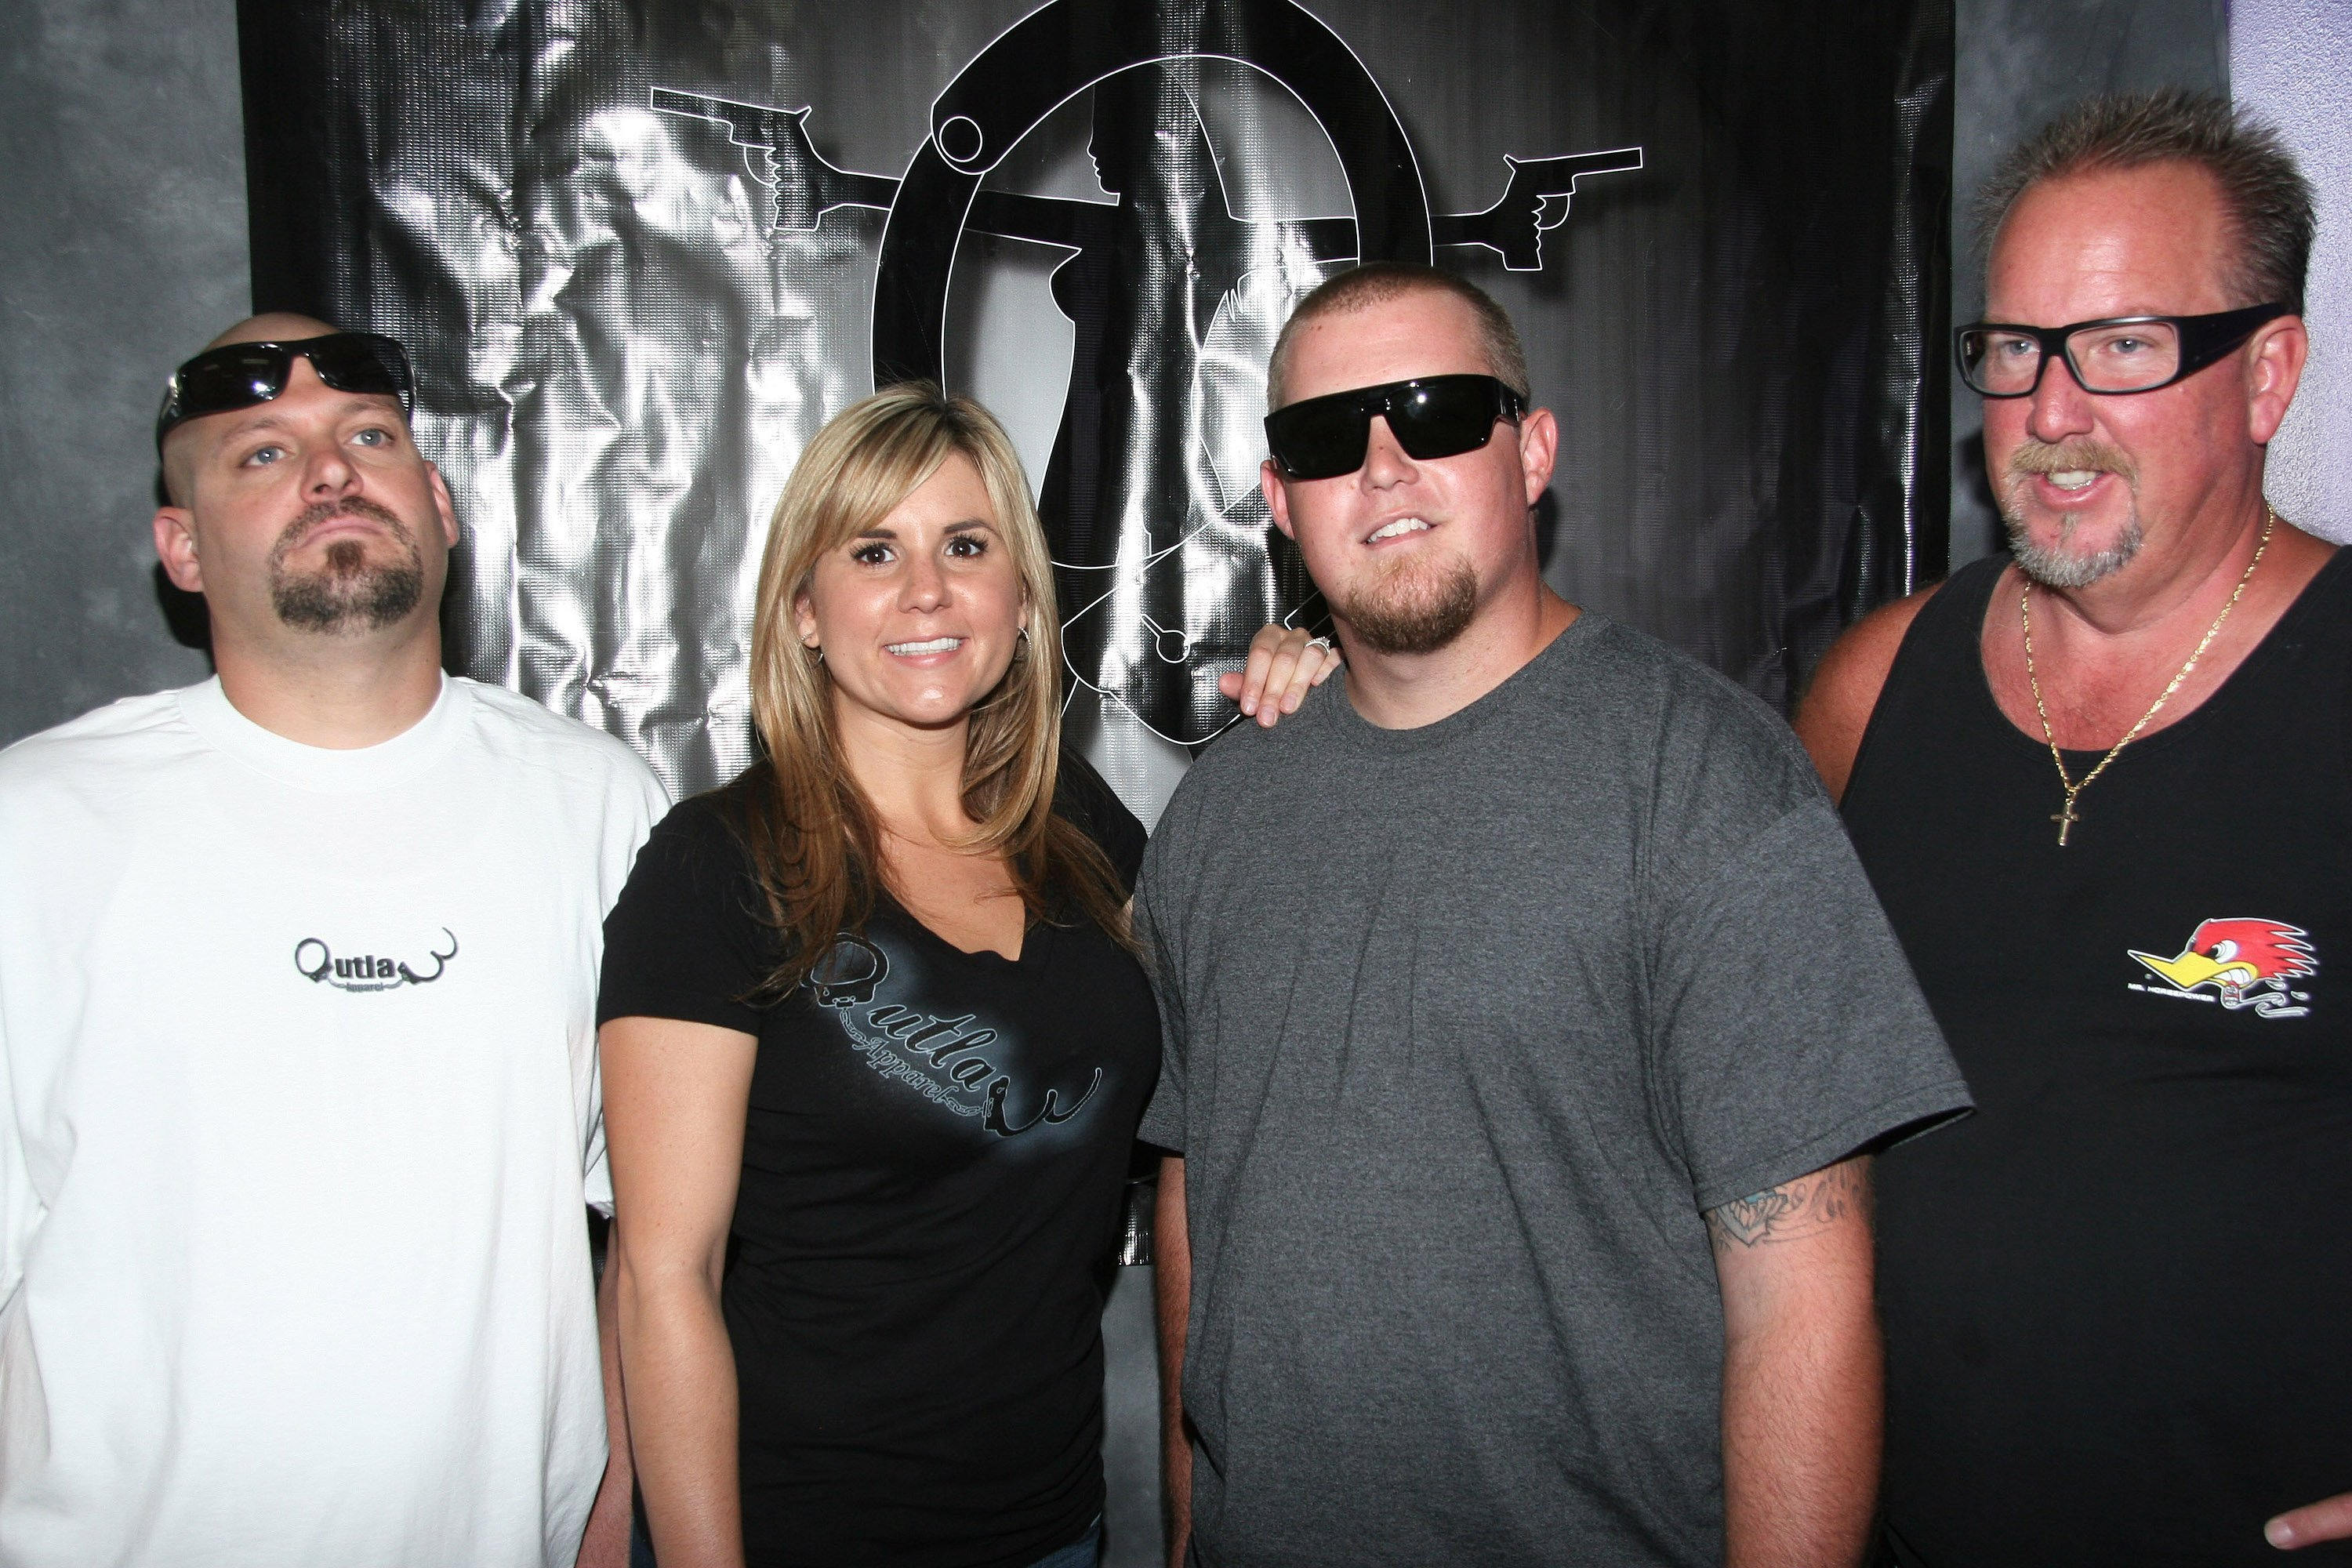 Cast of A&E Storage Wars | Photo: Getty Images